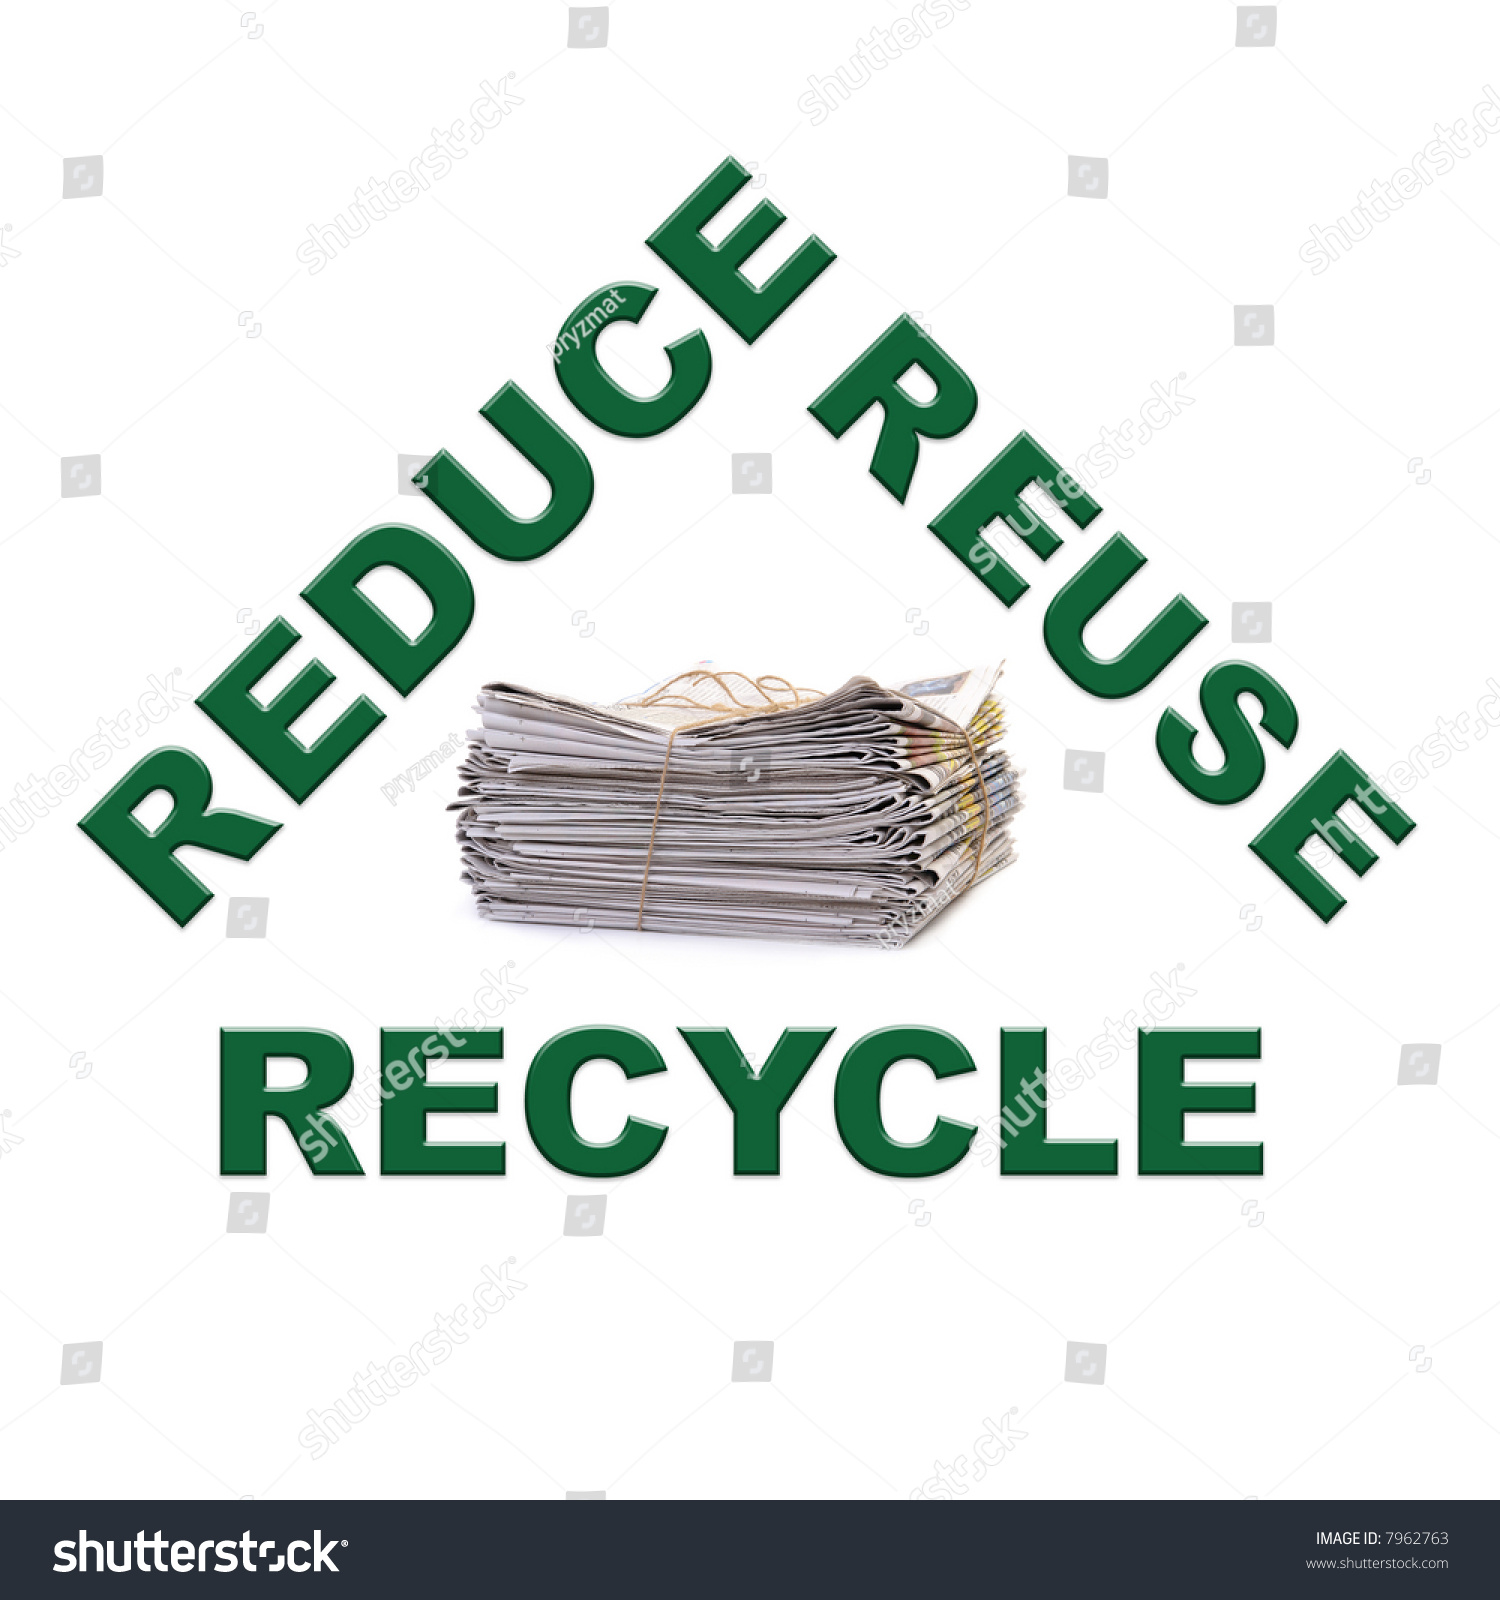 Reduce reuse recycle essay